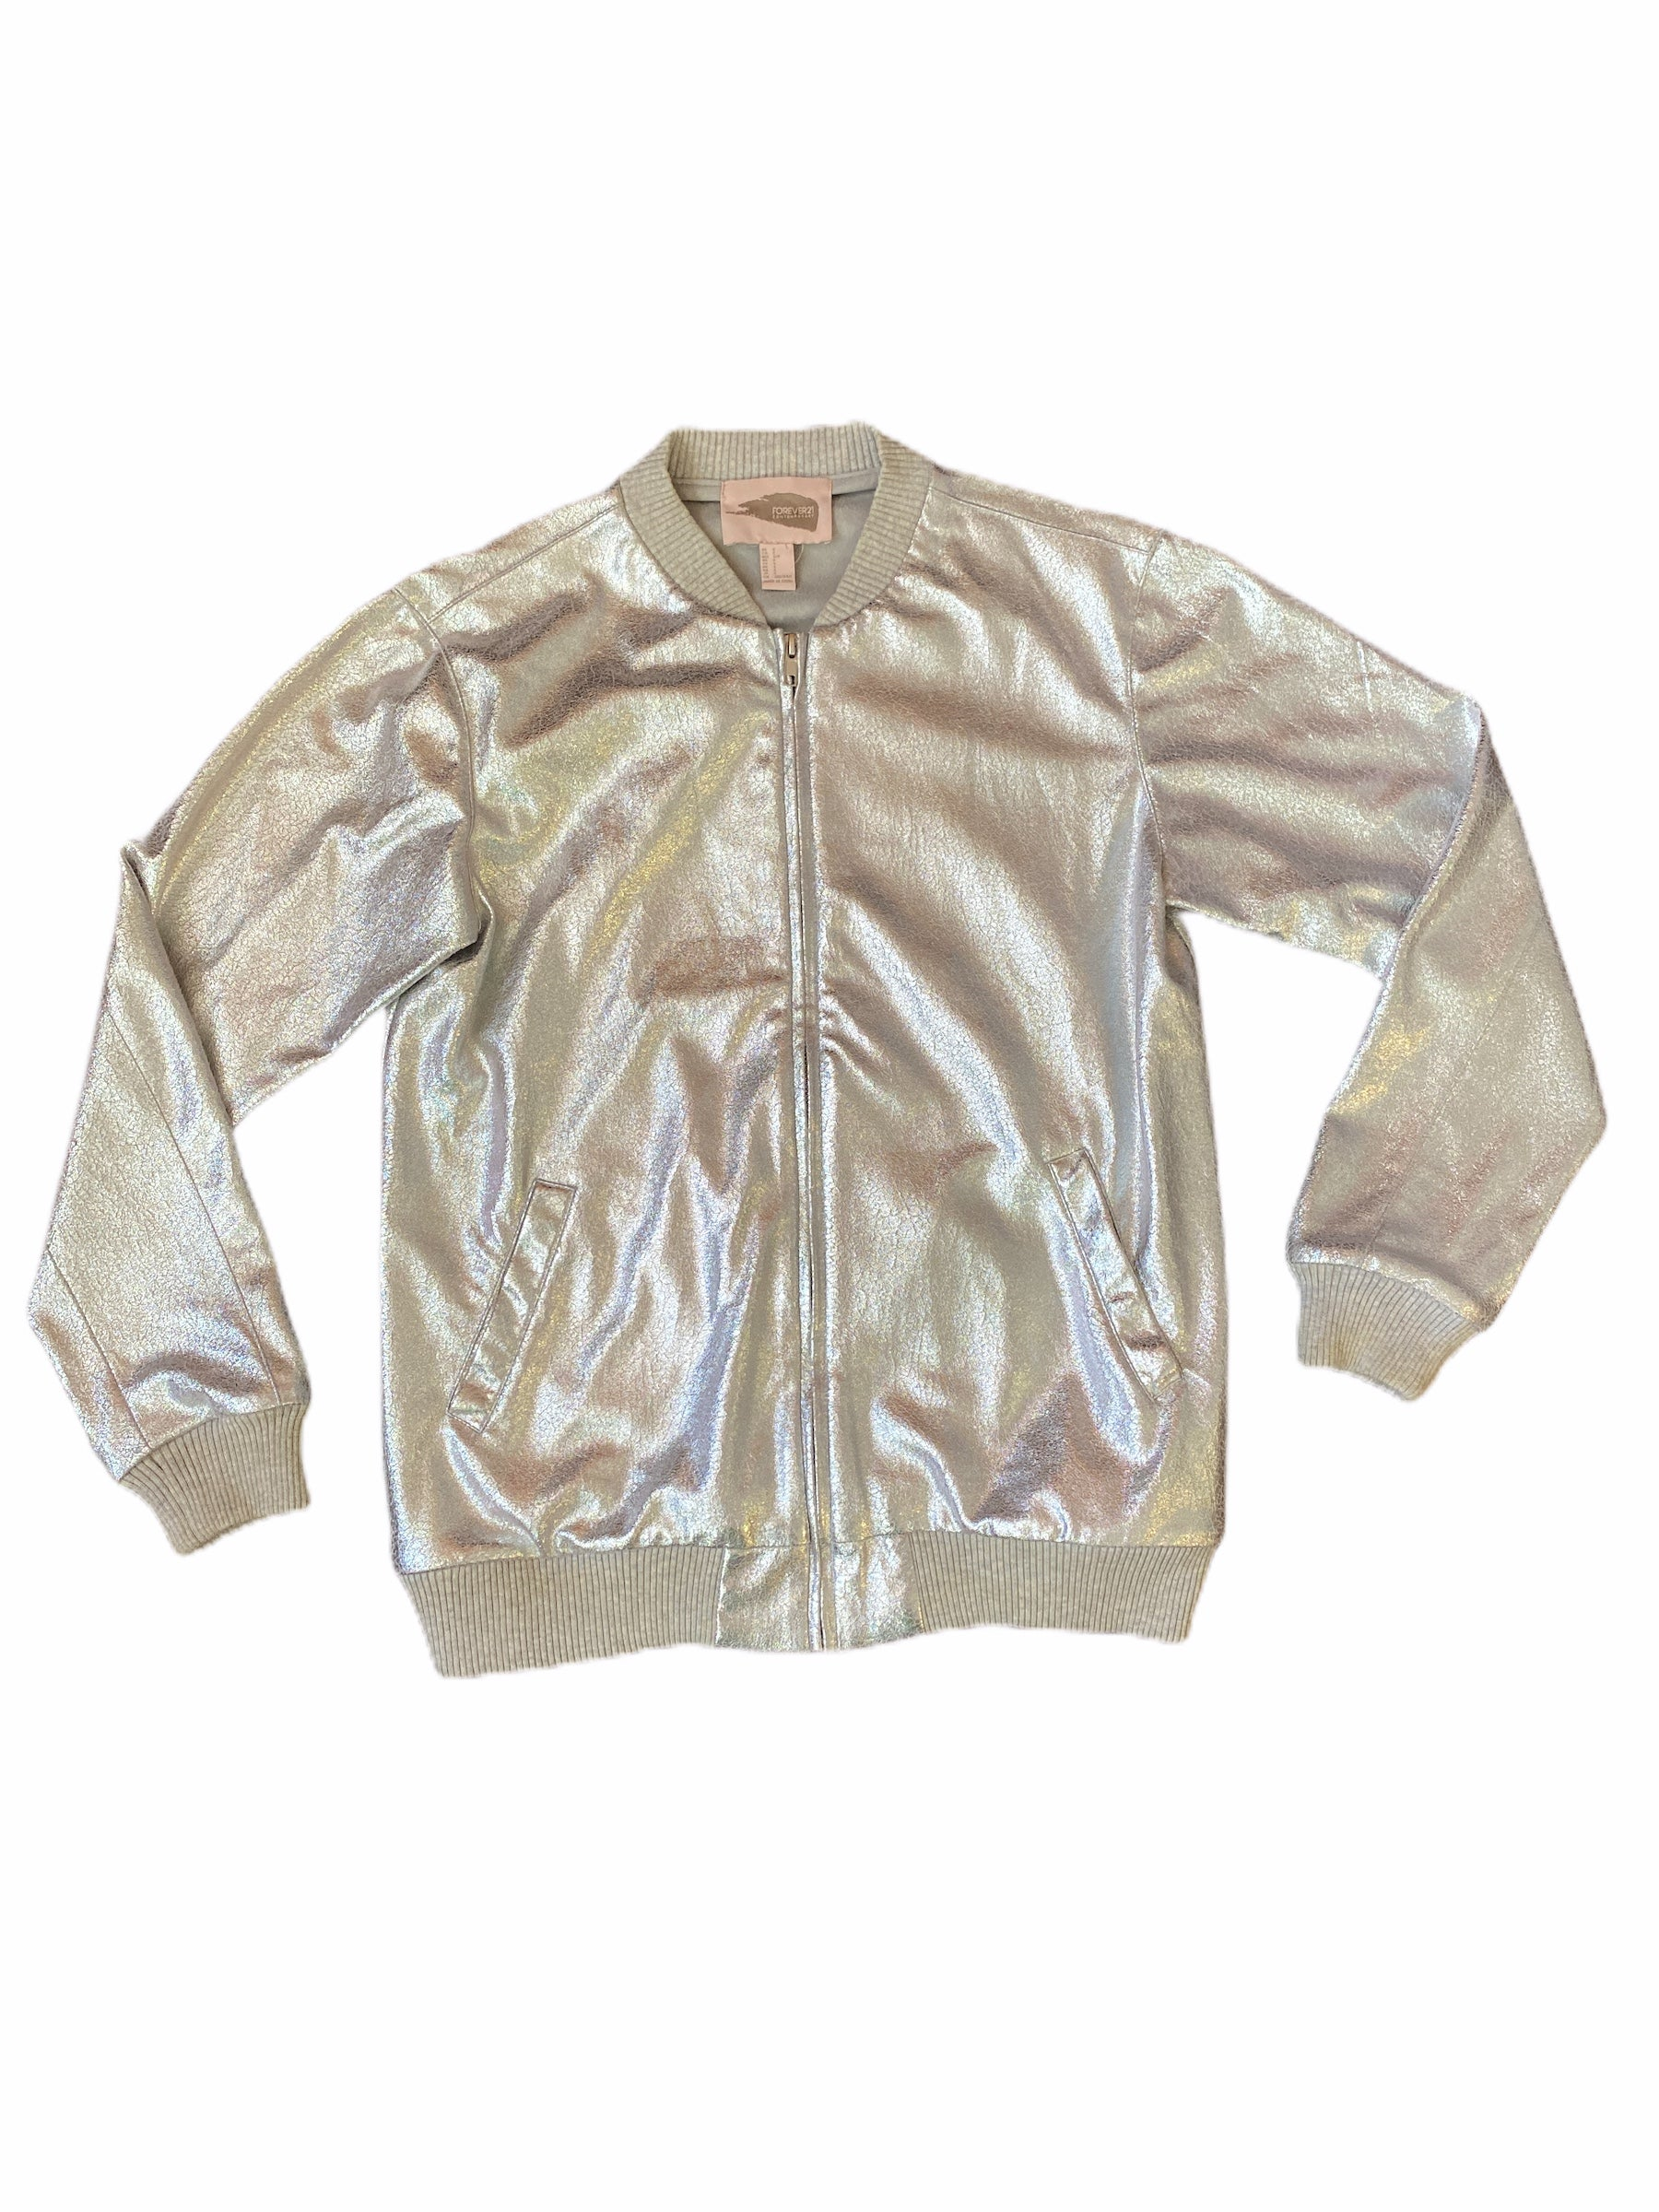 Forever 21 Silver Jacket Small (14/16 Boys)